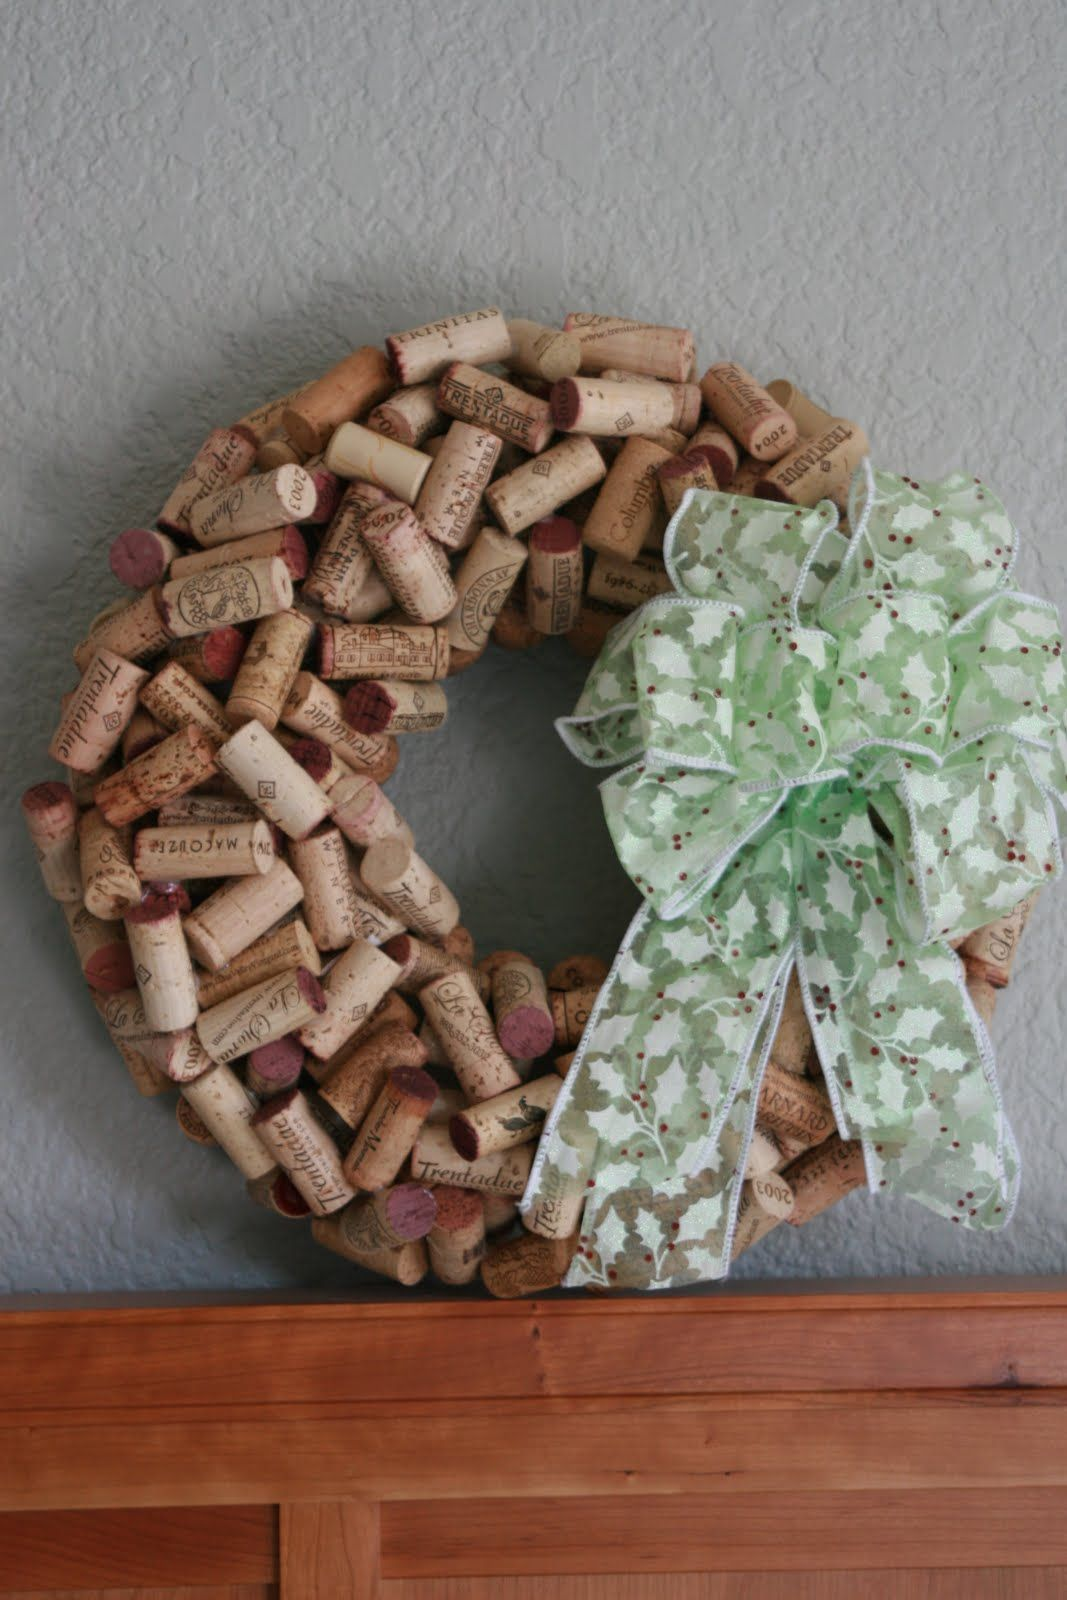 Wonderful creative idea for using corks. I know Lisa has a few ...